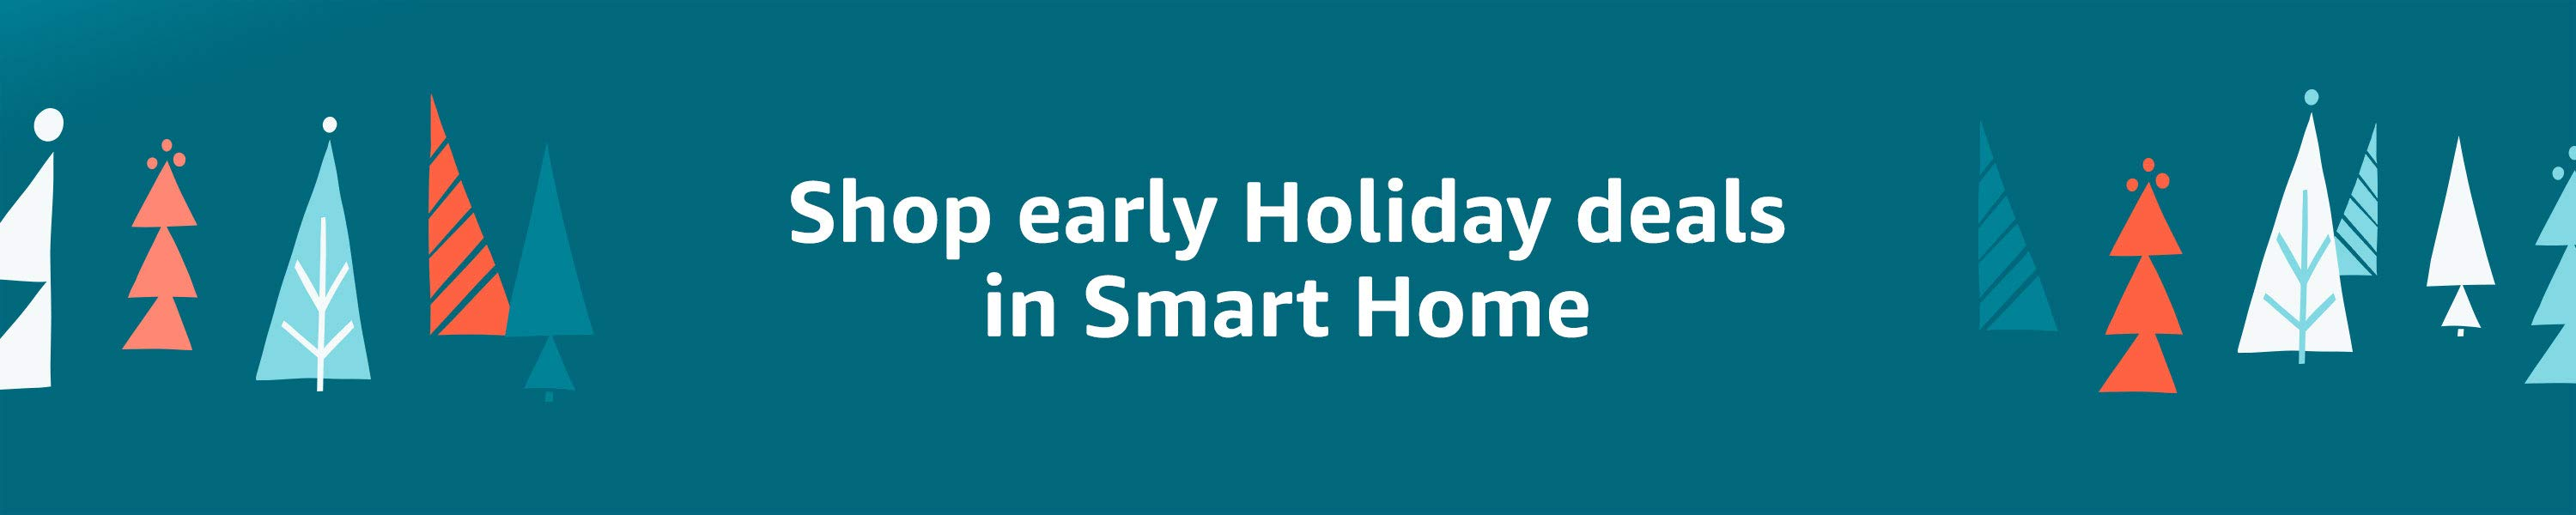 Shop early Holiday deals in Smart Home